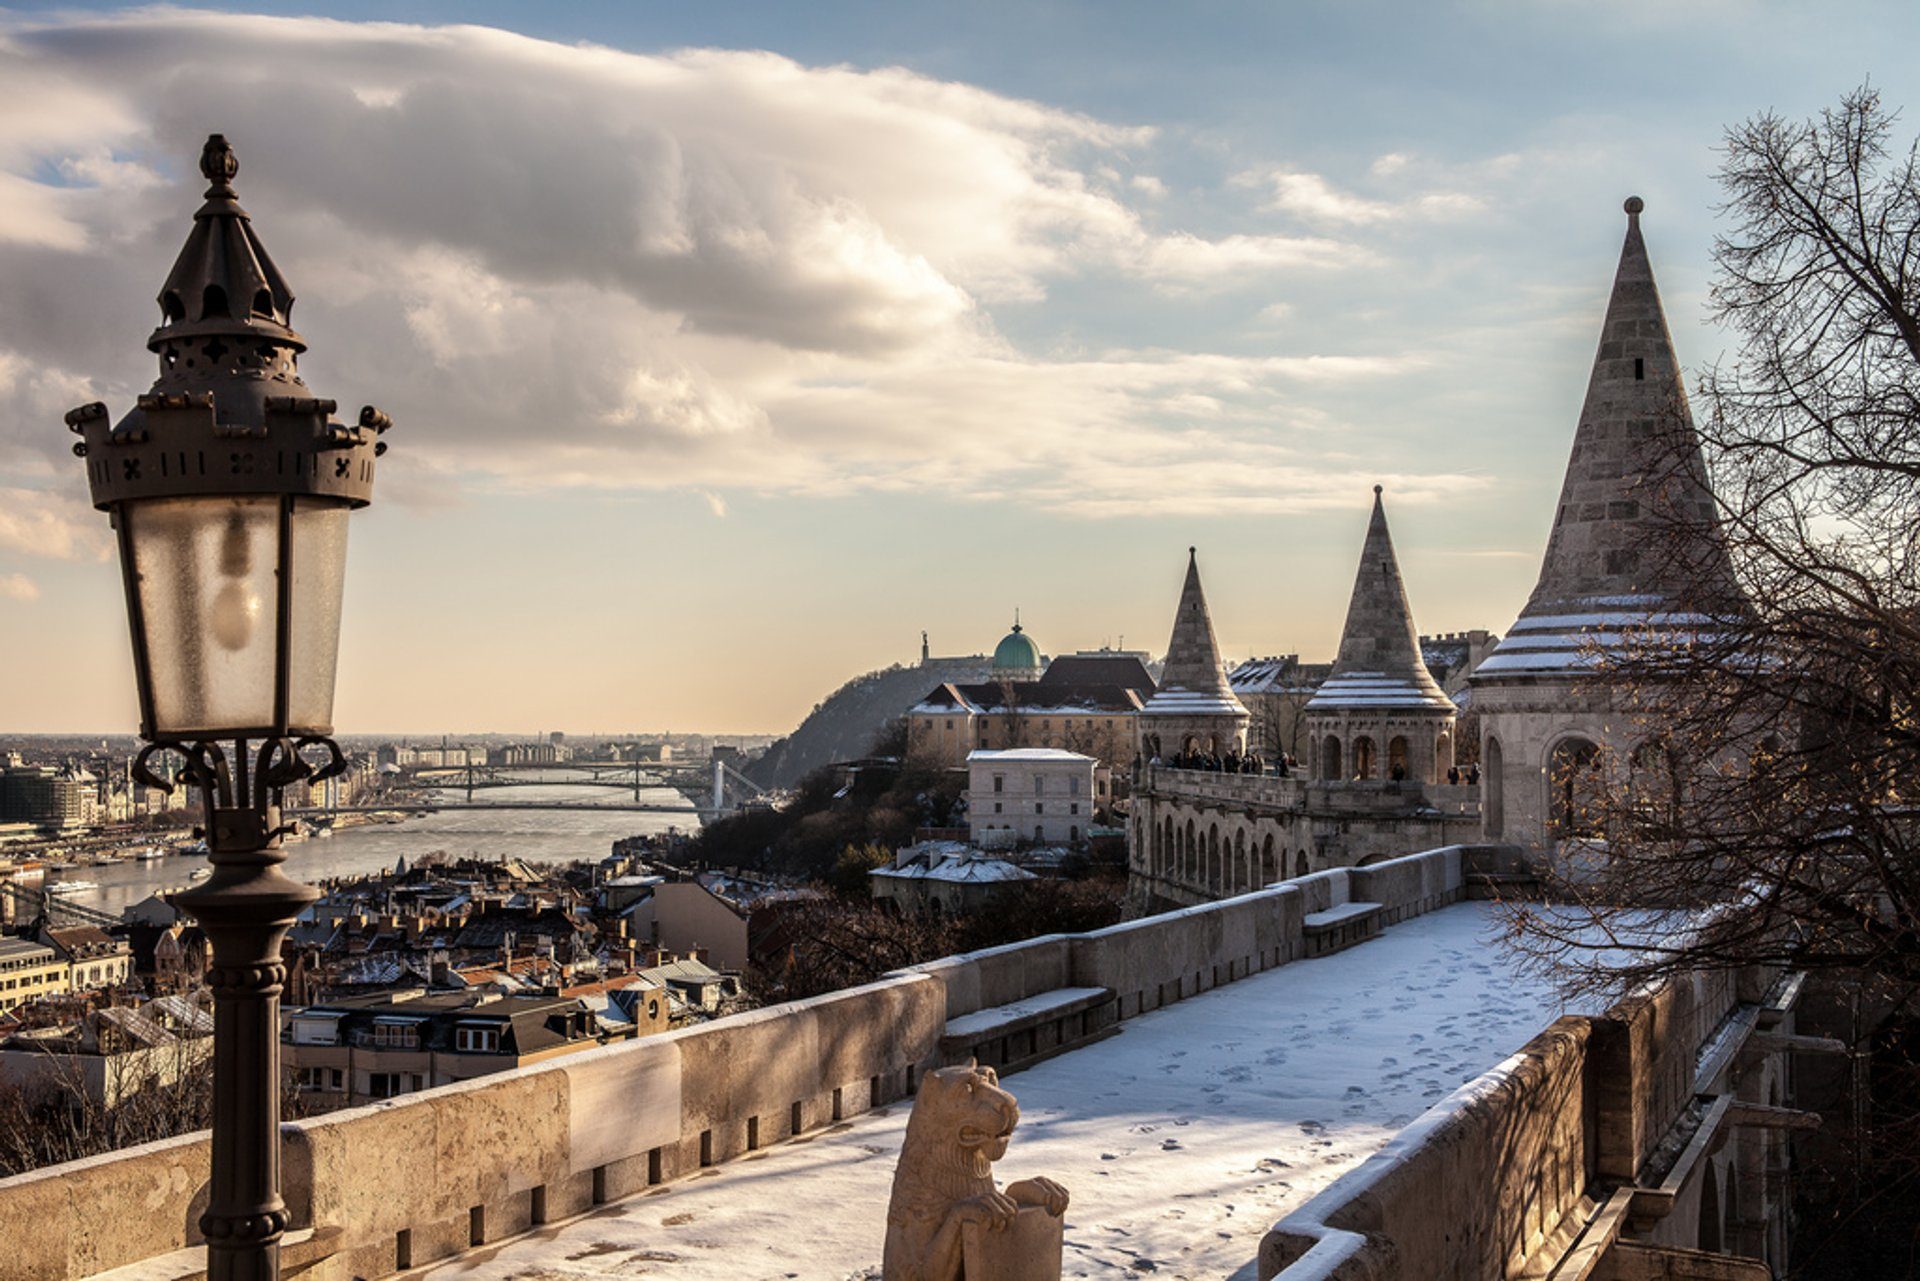 Winter Wonderland at the Fisherman's Bastion in Budapest - Best Season 2020